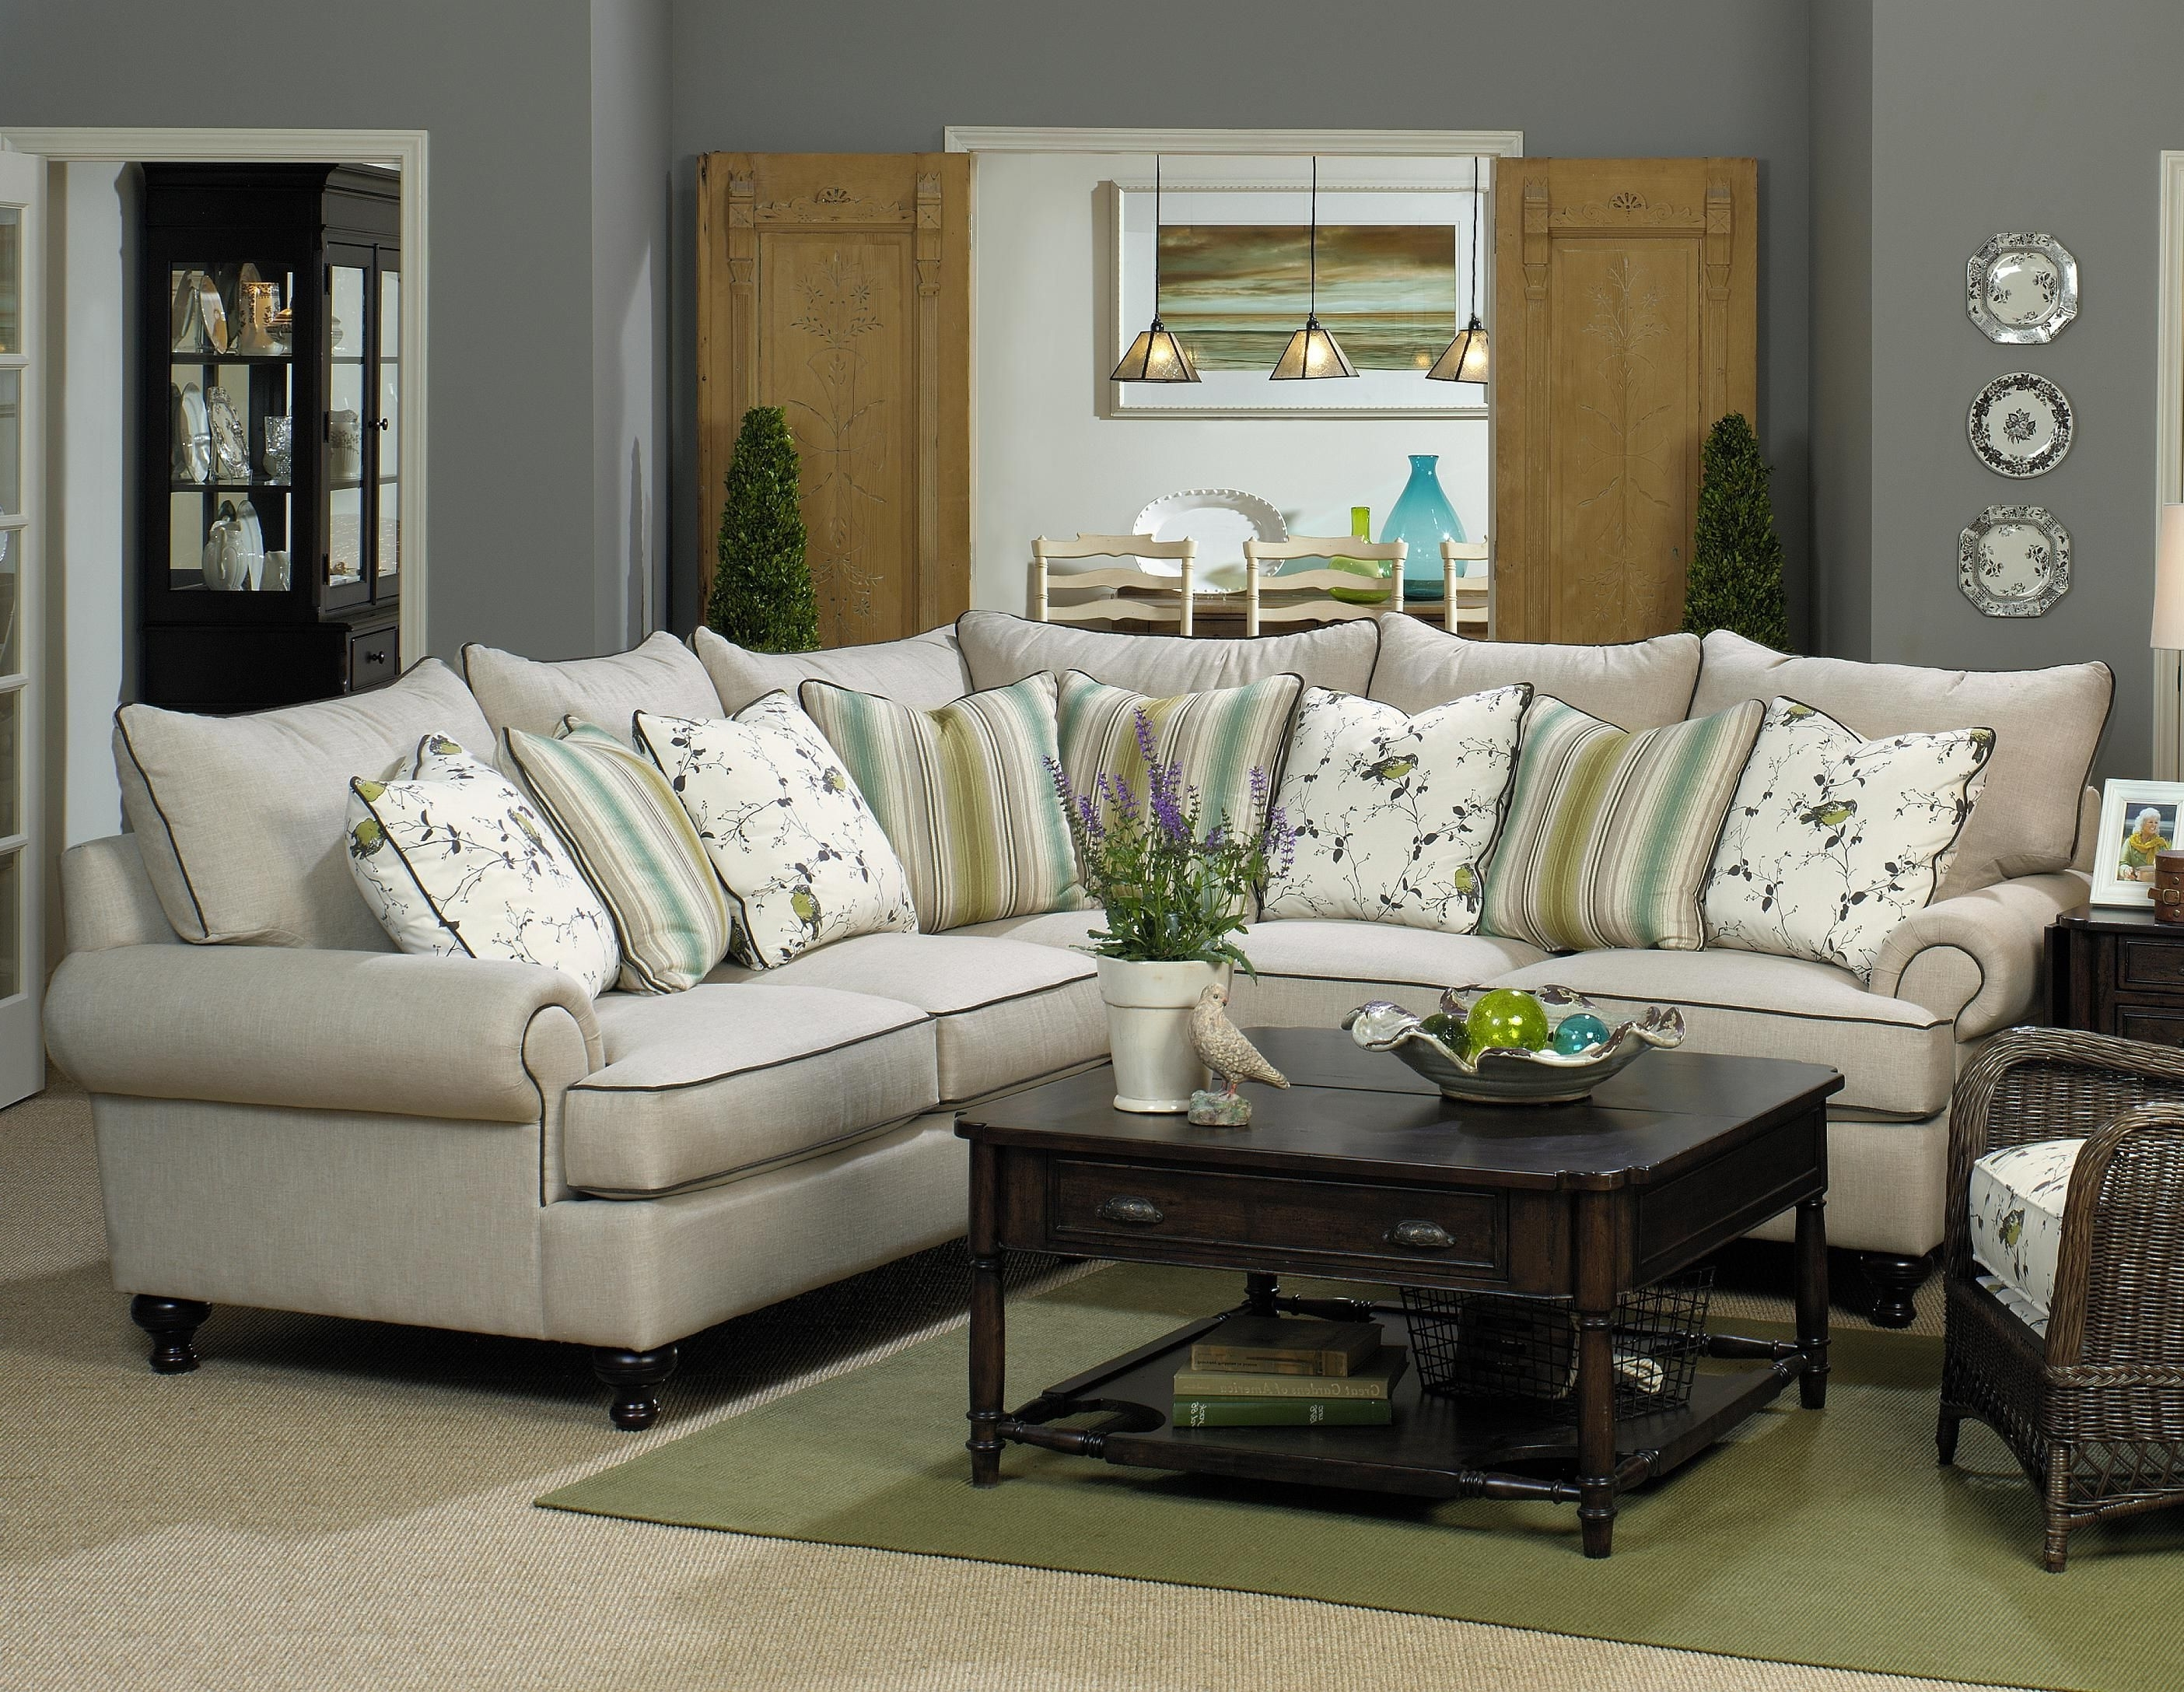 Pensacola Fl Sectional Sofas Within Newest Paula Deen Home 2 Piece Sectional Sofapaula Deenuniversal (View 9 of 15)